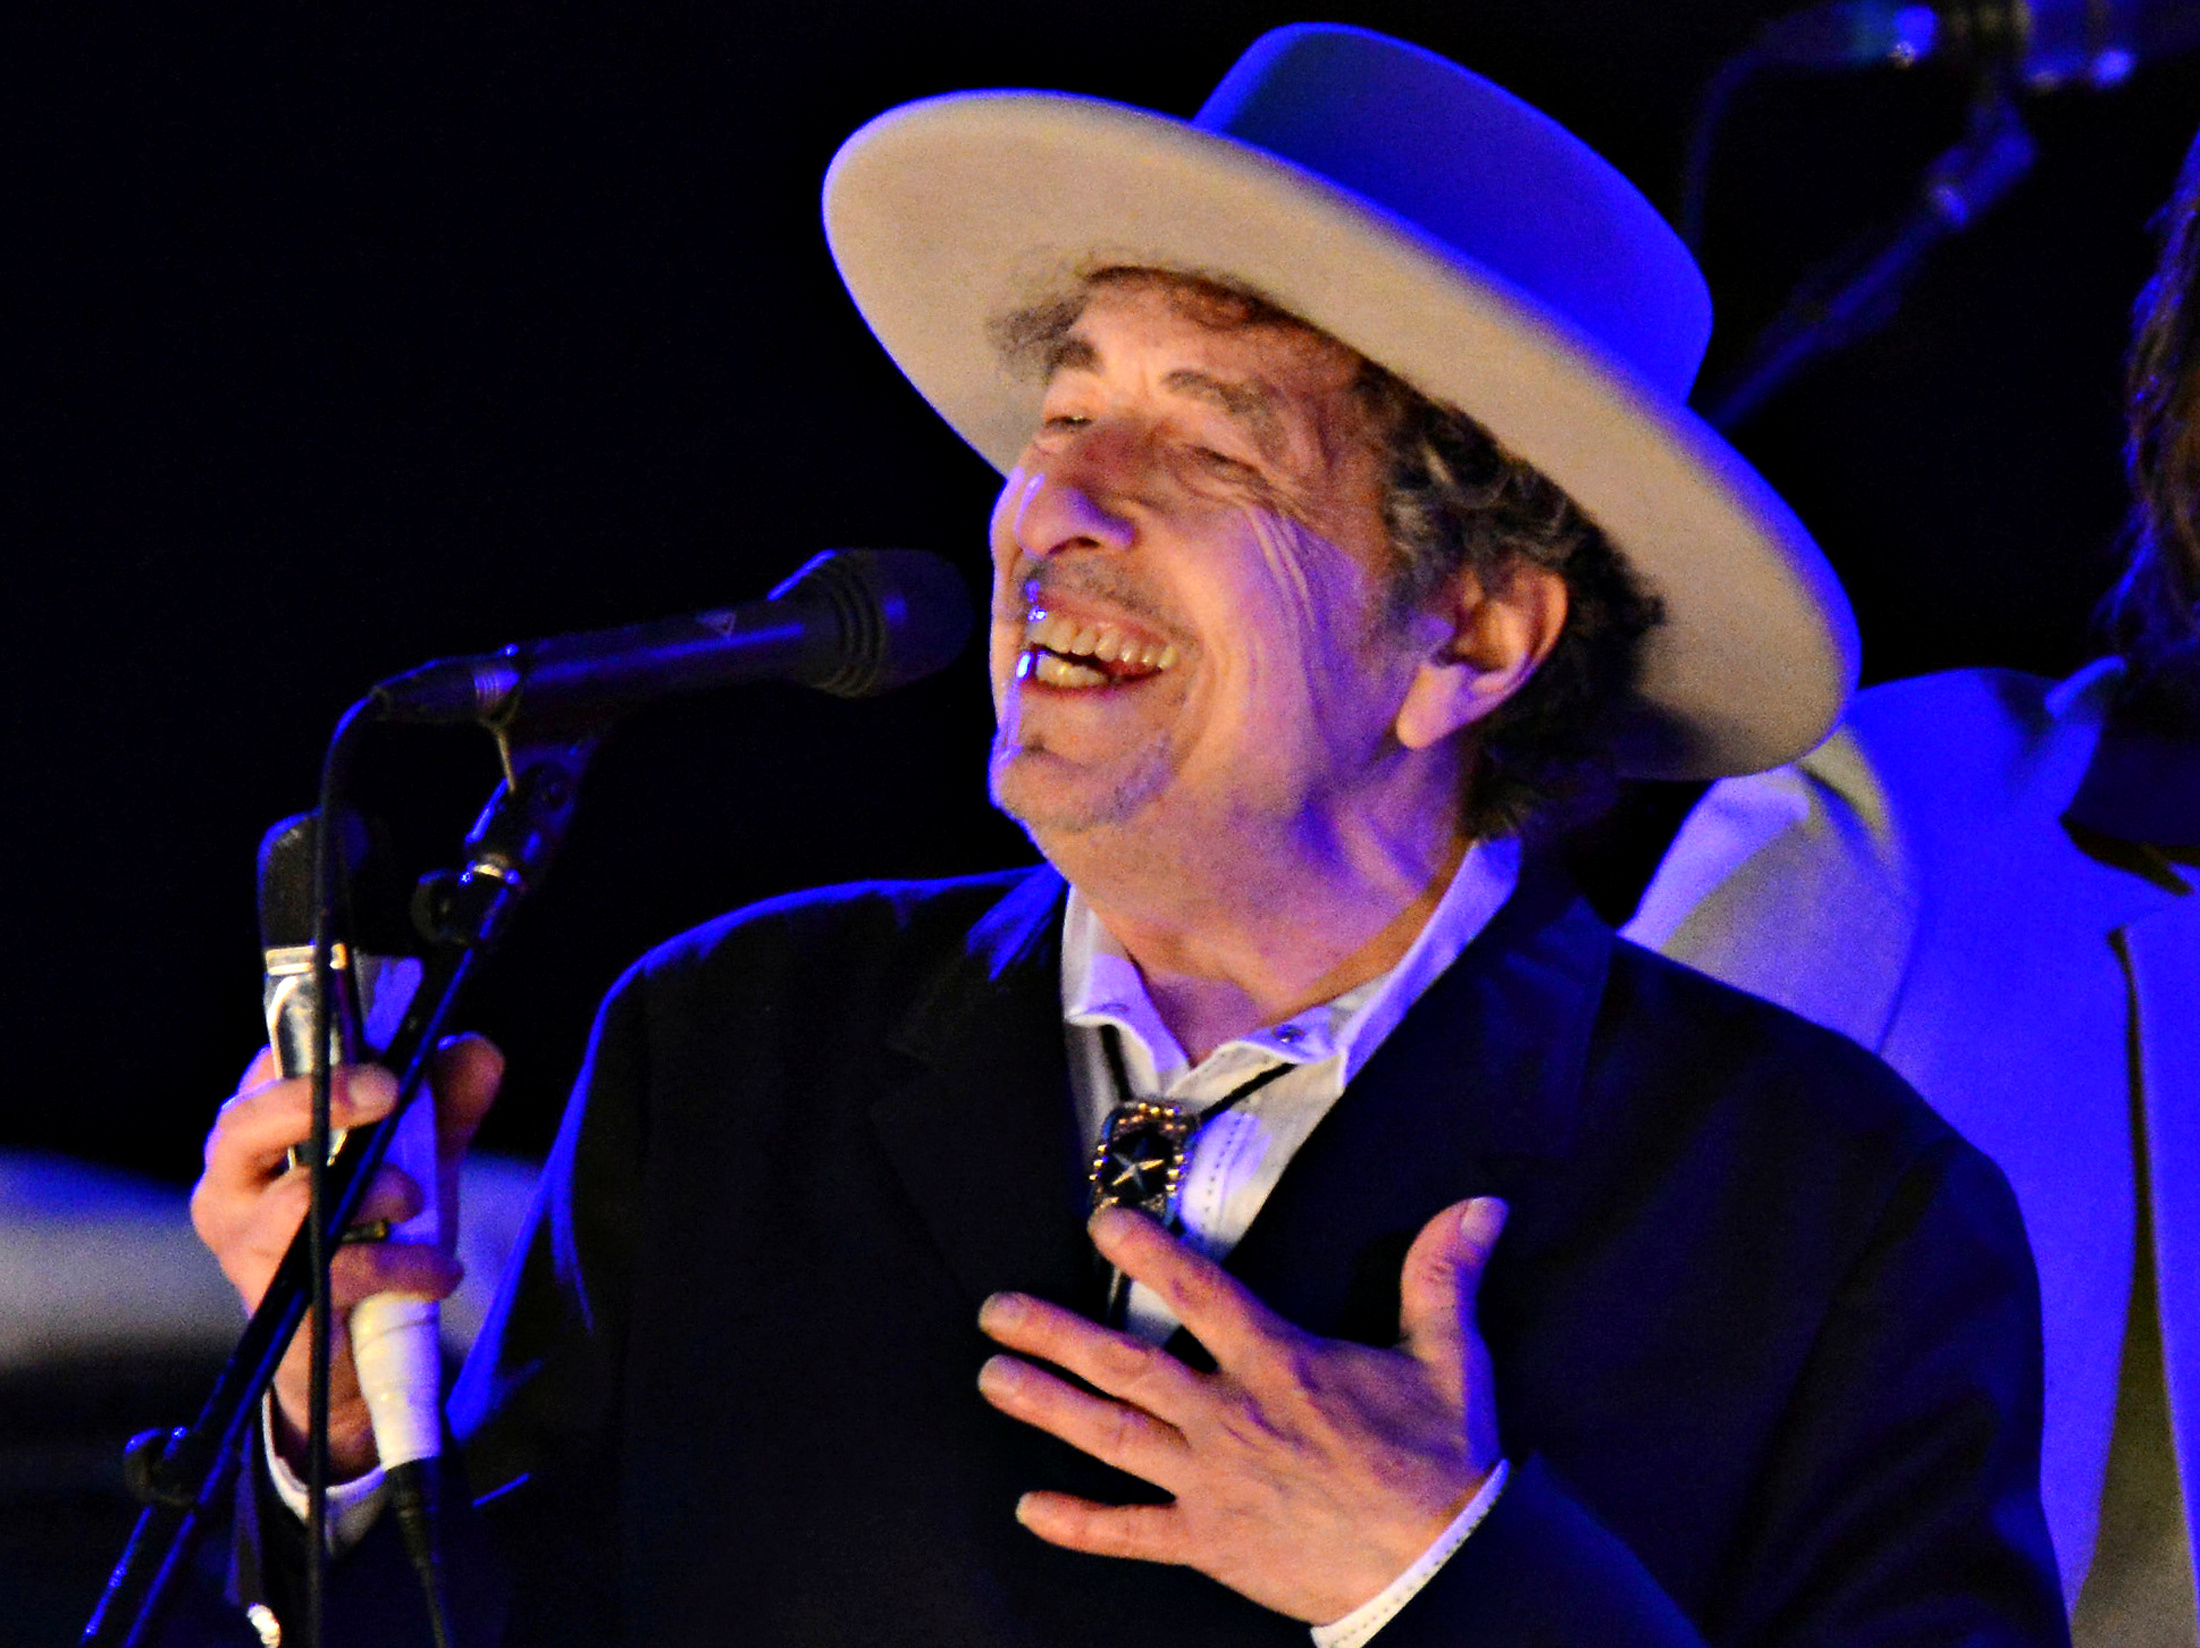 U.S. musician Bob Dylan performs during on day 2 of The Hop Festival in Paddock Wood, Kent on June 30th 2012. REUTERS/Ki Price